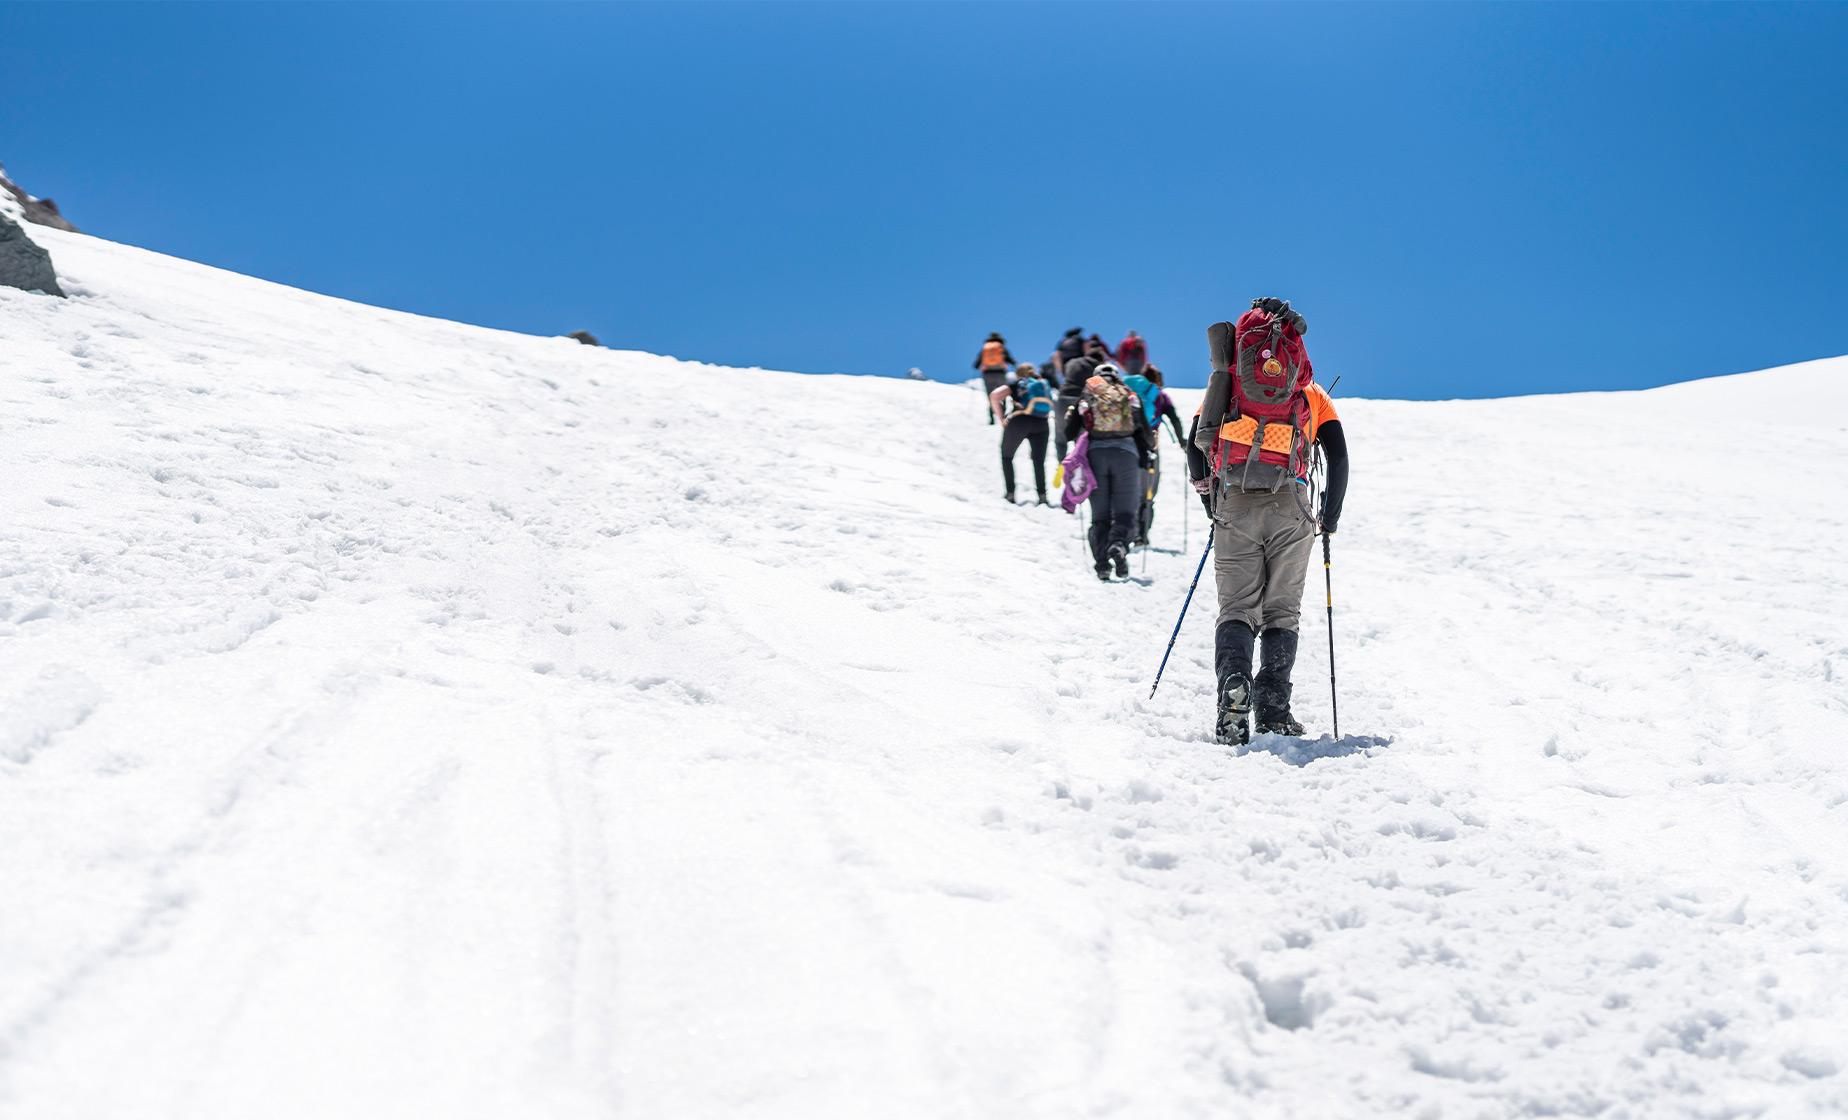 Andes Snowshoe Hiking